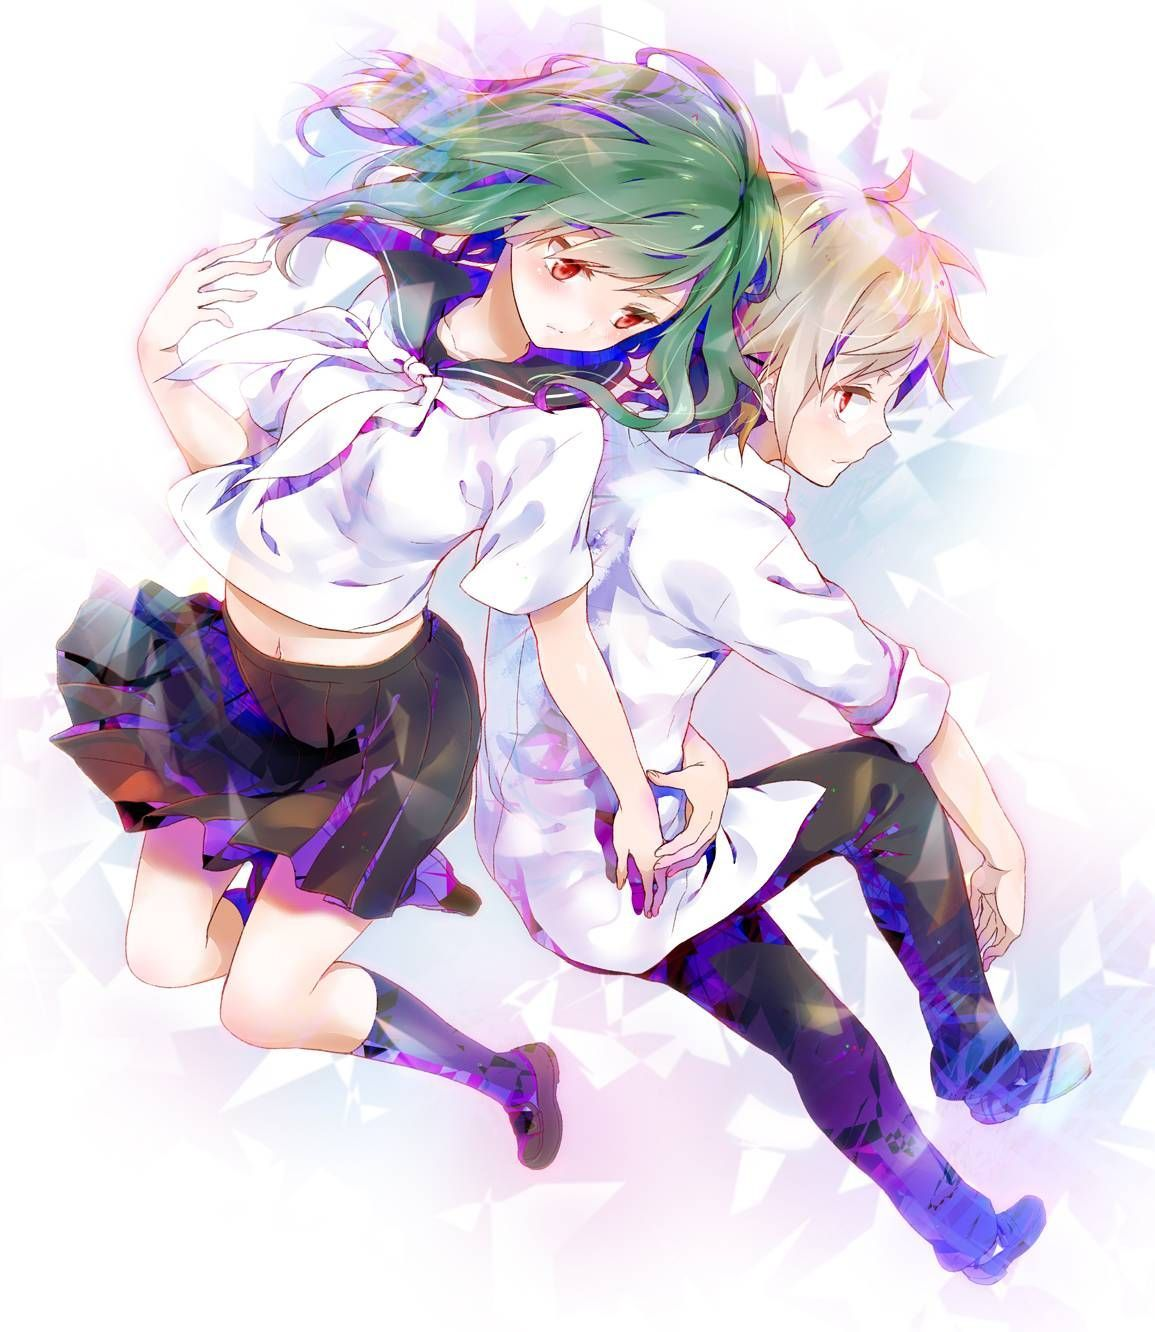 Pin by ️黒絵 ️ on カゲロウデイズ Kagerou project, Anime, Kido